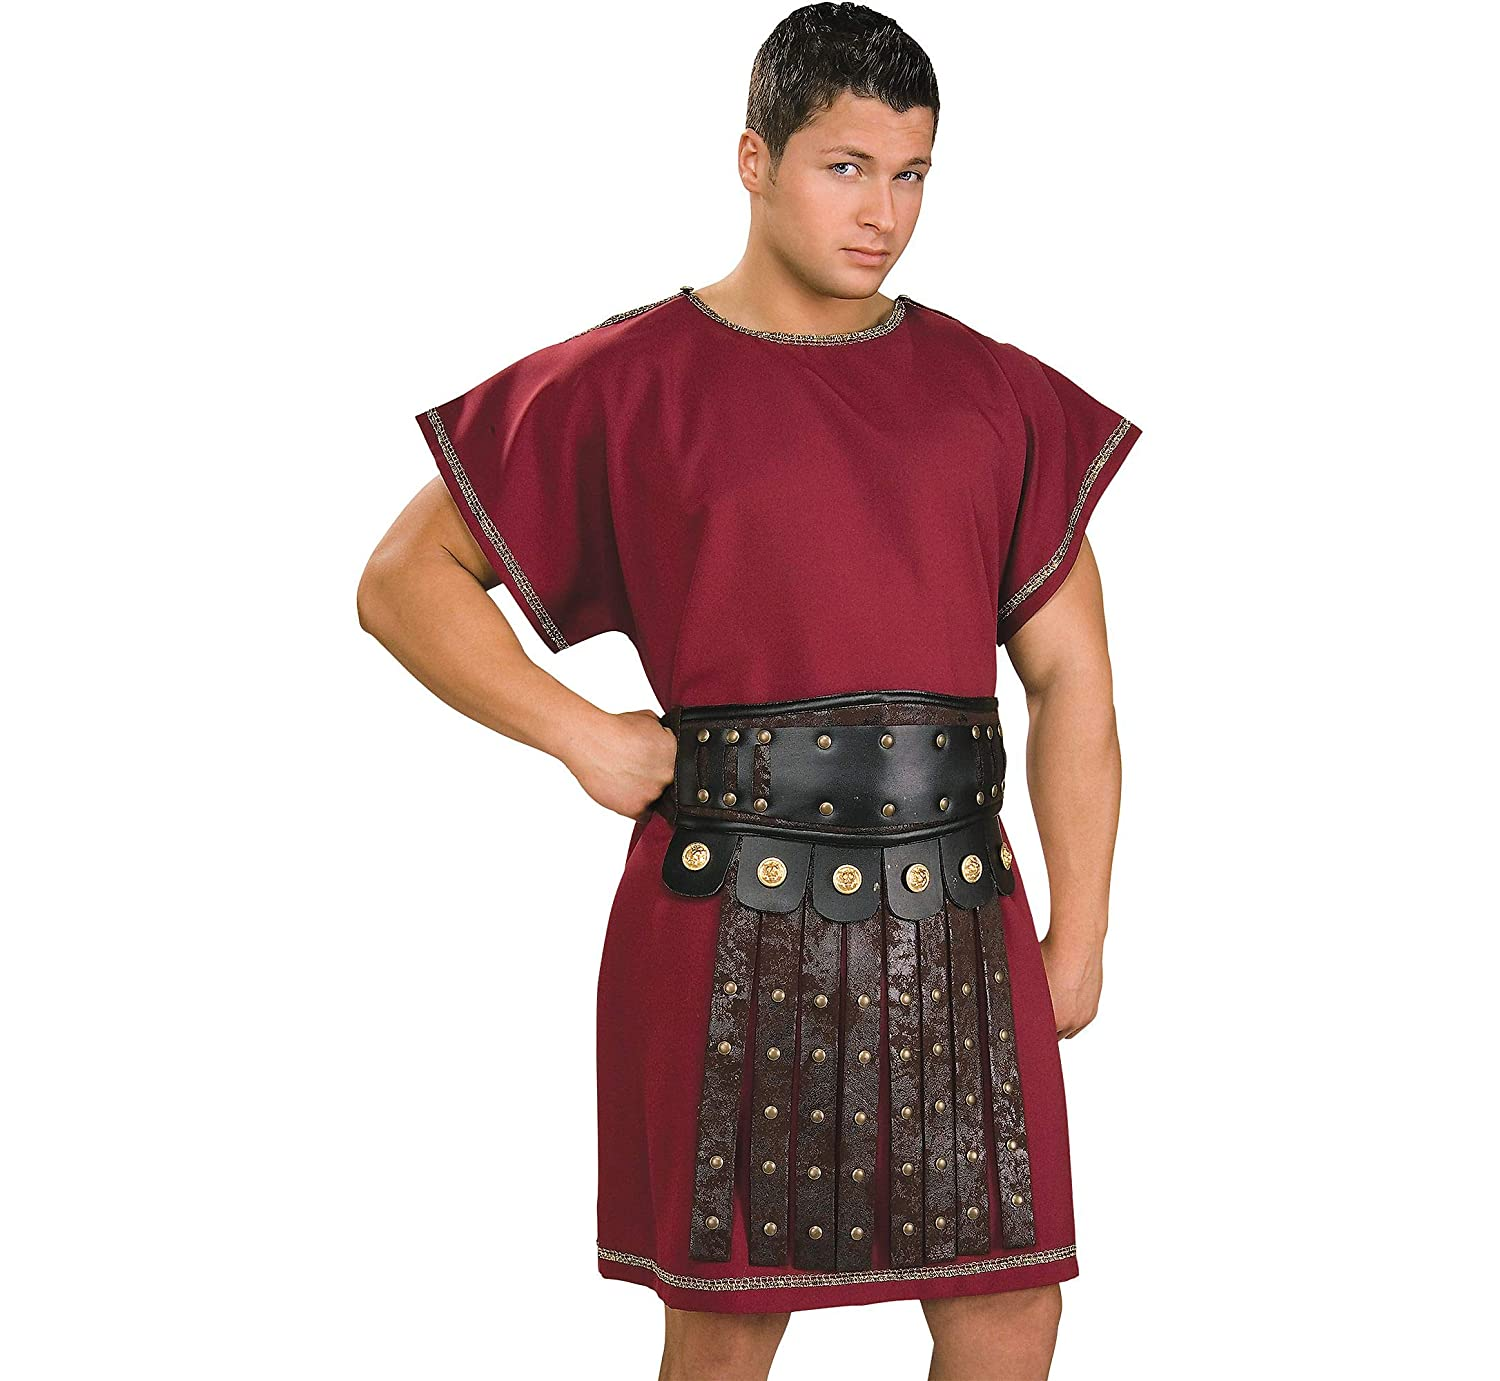 a758ea19b12 Burgundy Tunic Mens Fancy Dress Roman Greek Medieval Book Day Adults  Costume New